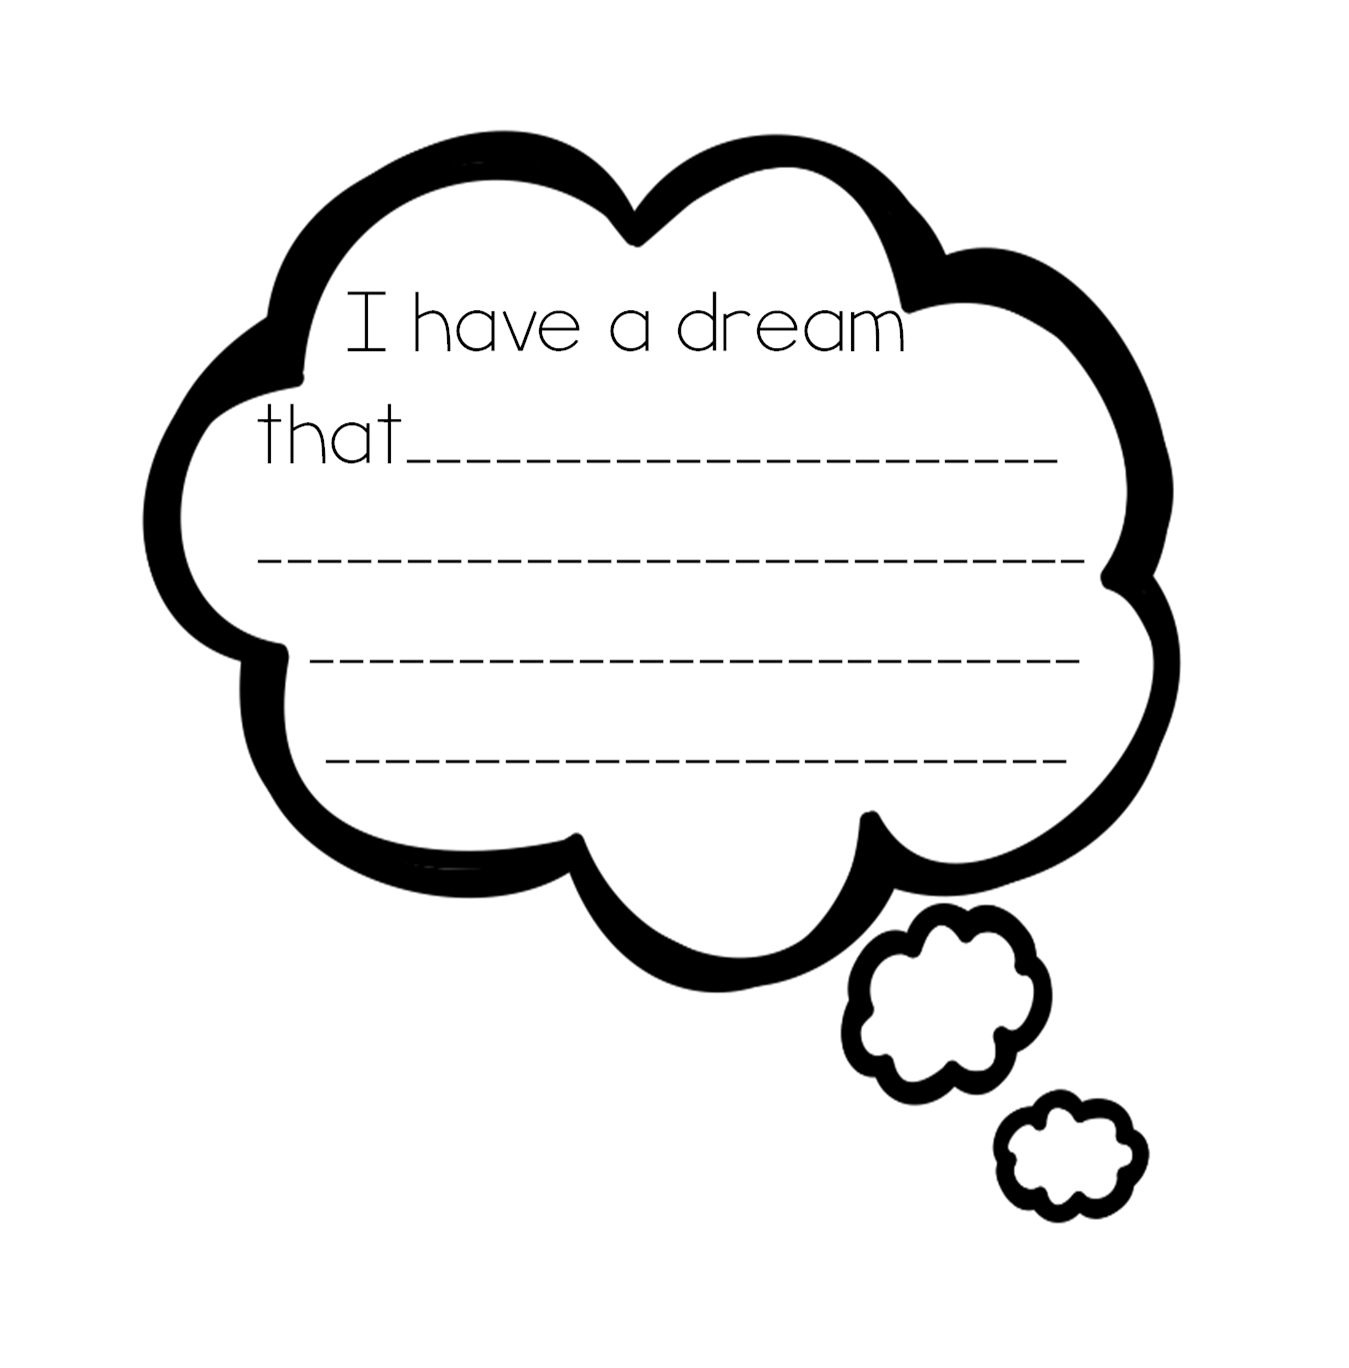 informative speech about dreams Free essay: how dreams affect our lives do dreams even mean anything today in my informative speech about dreams, i hope to enlighten you about dreams.